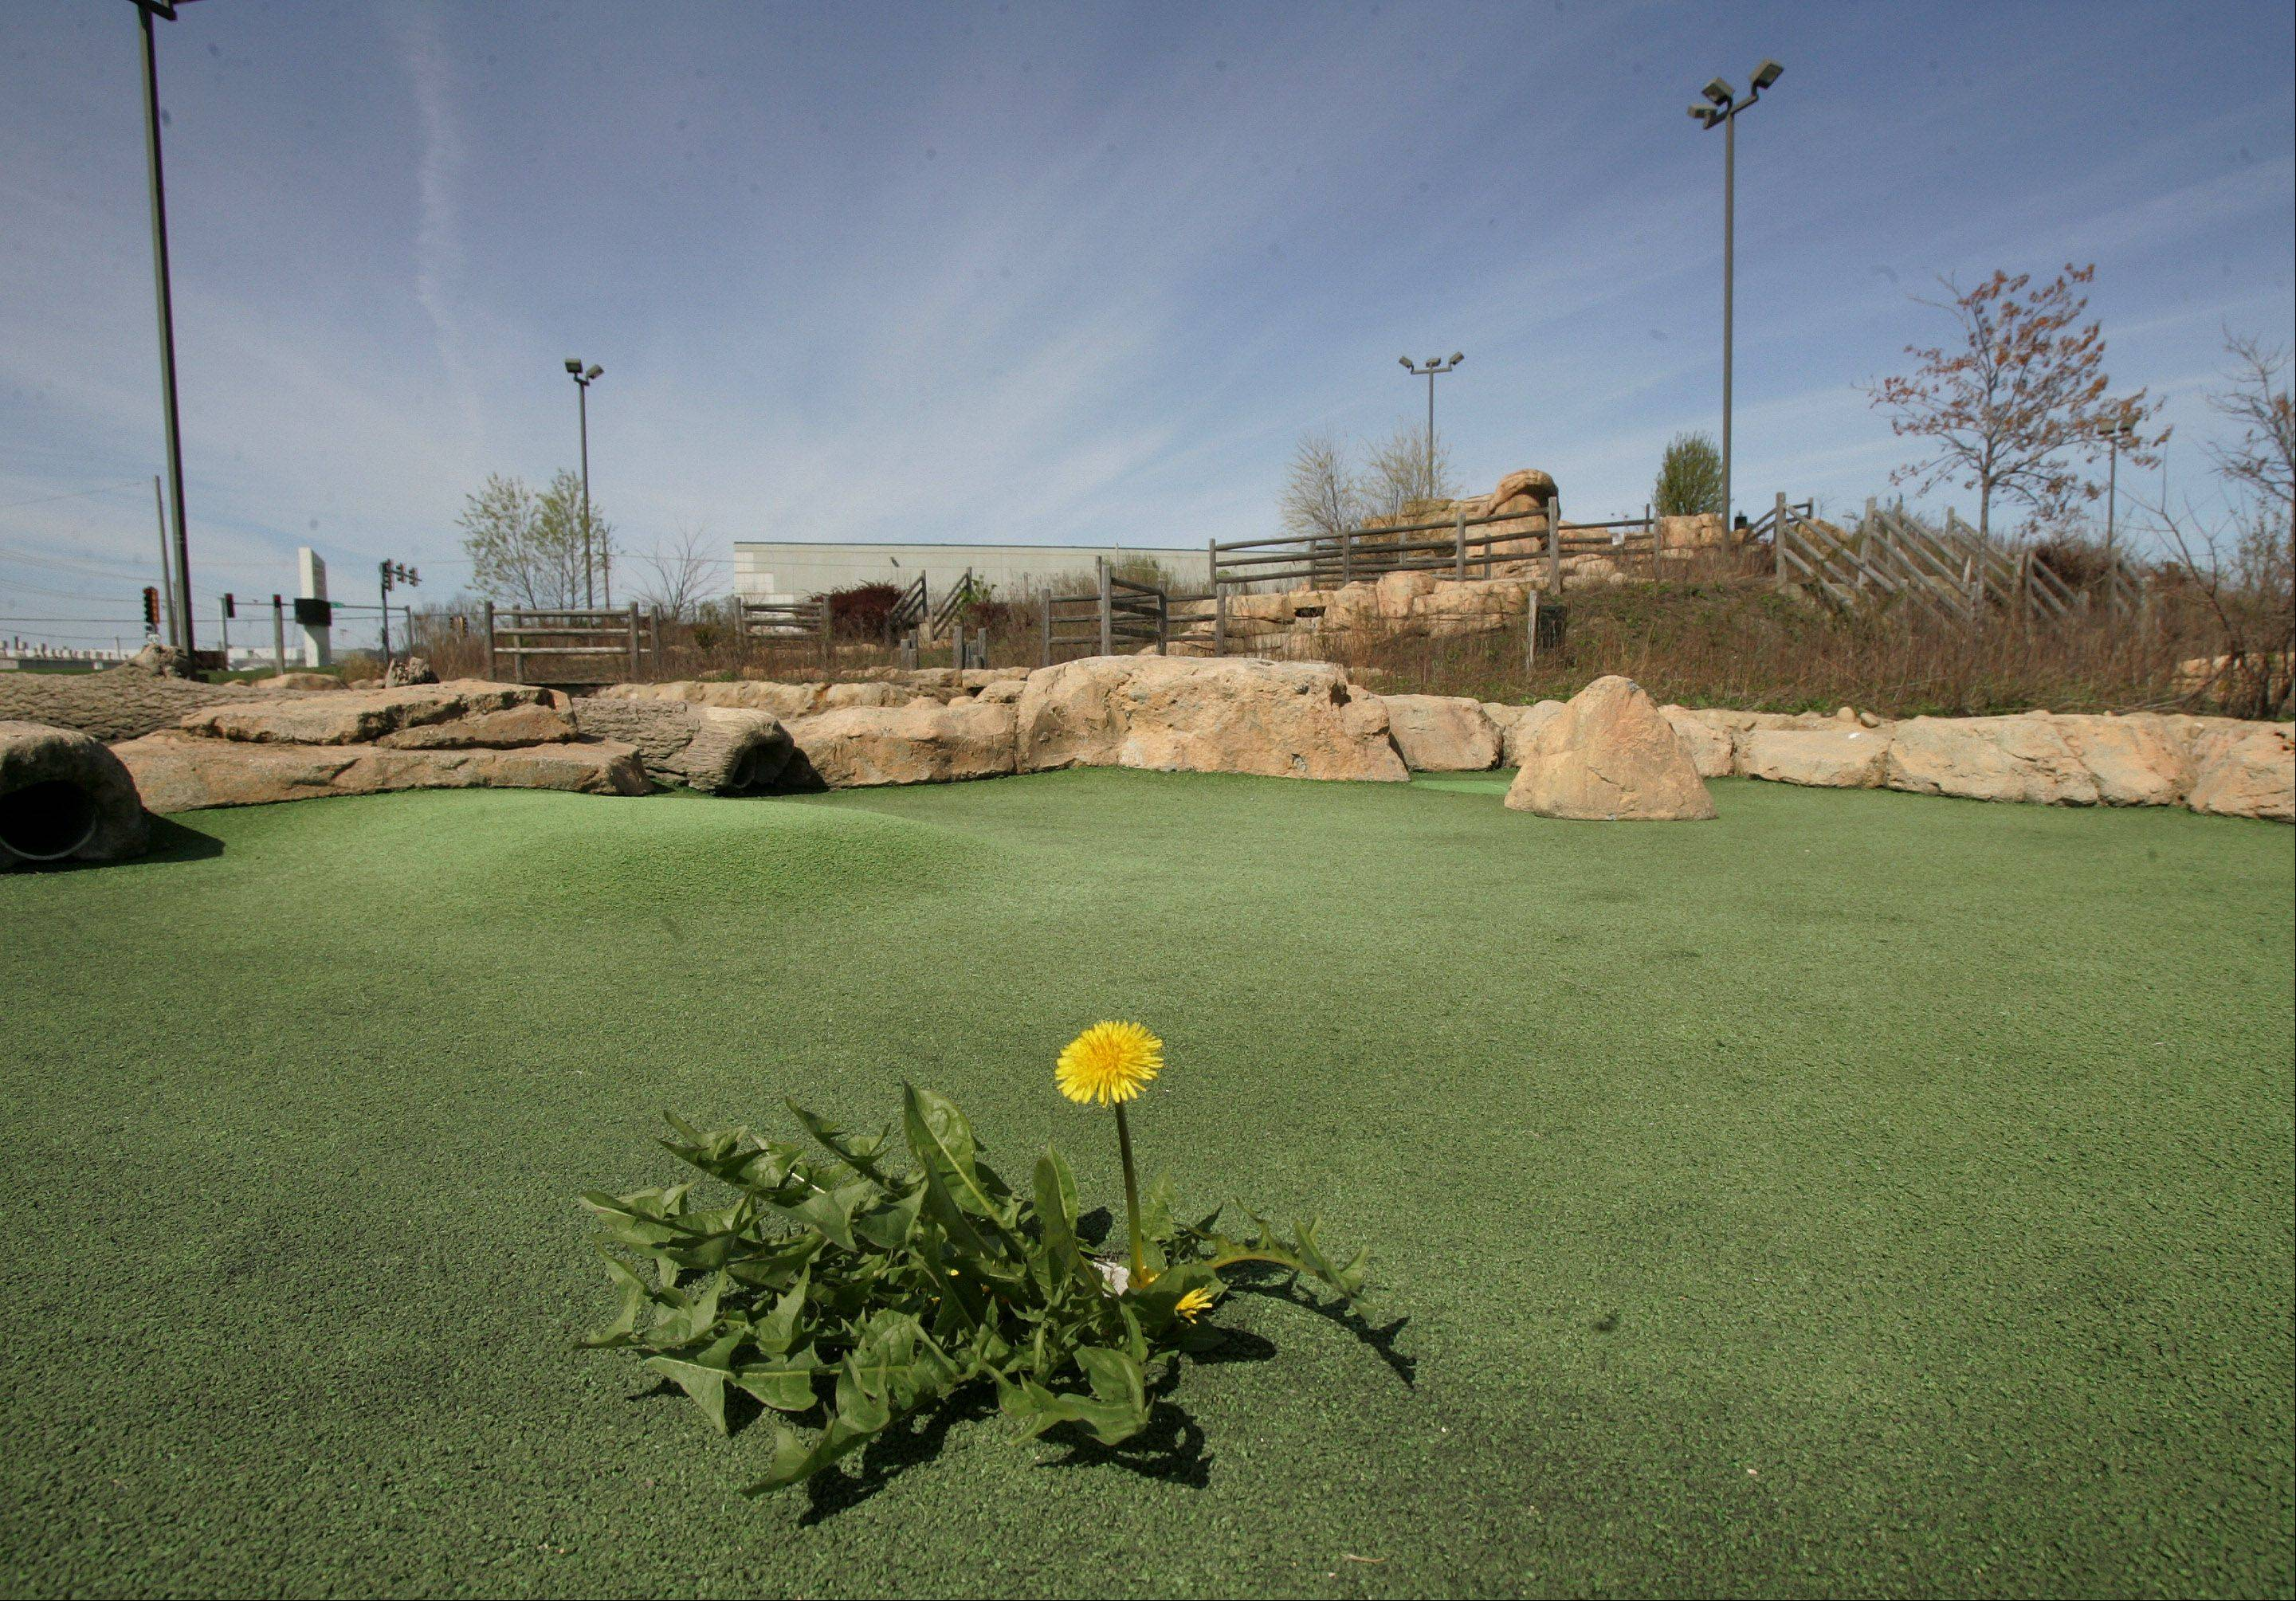 Gilbert R. Boucher II / gboucher@dailyheraldThe miniature golf course is falling apart and overrun with weeds as it sits idle at the Libertyville Sports Complex.